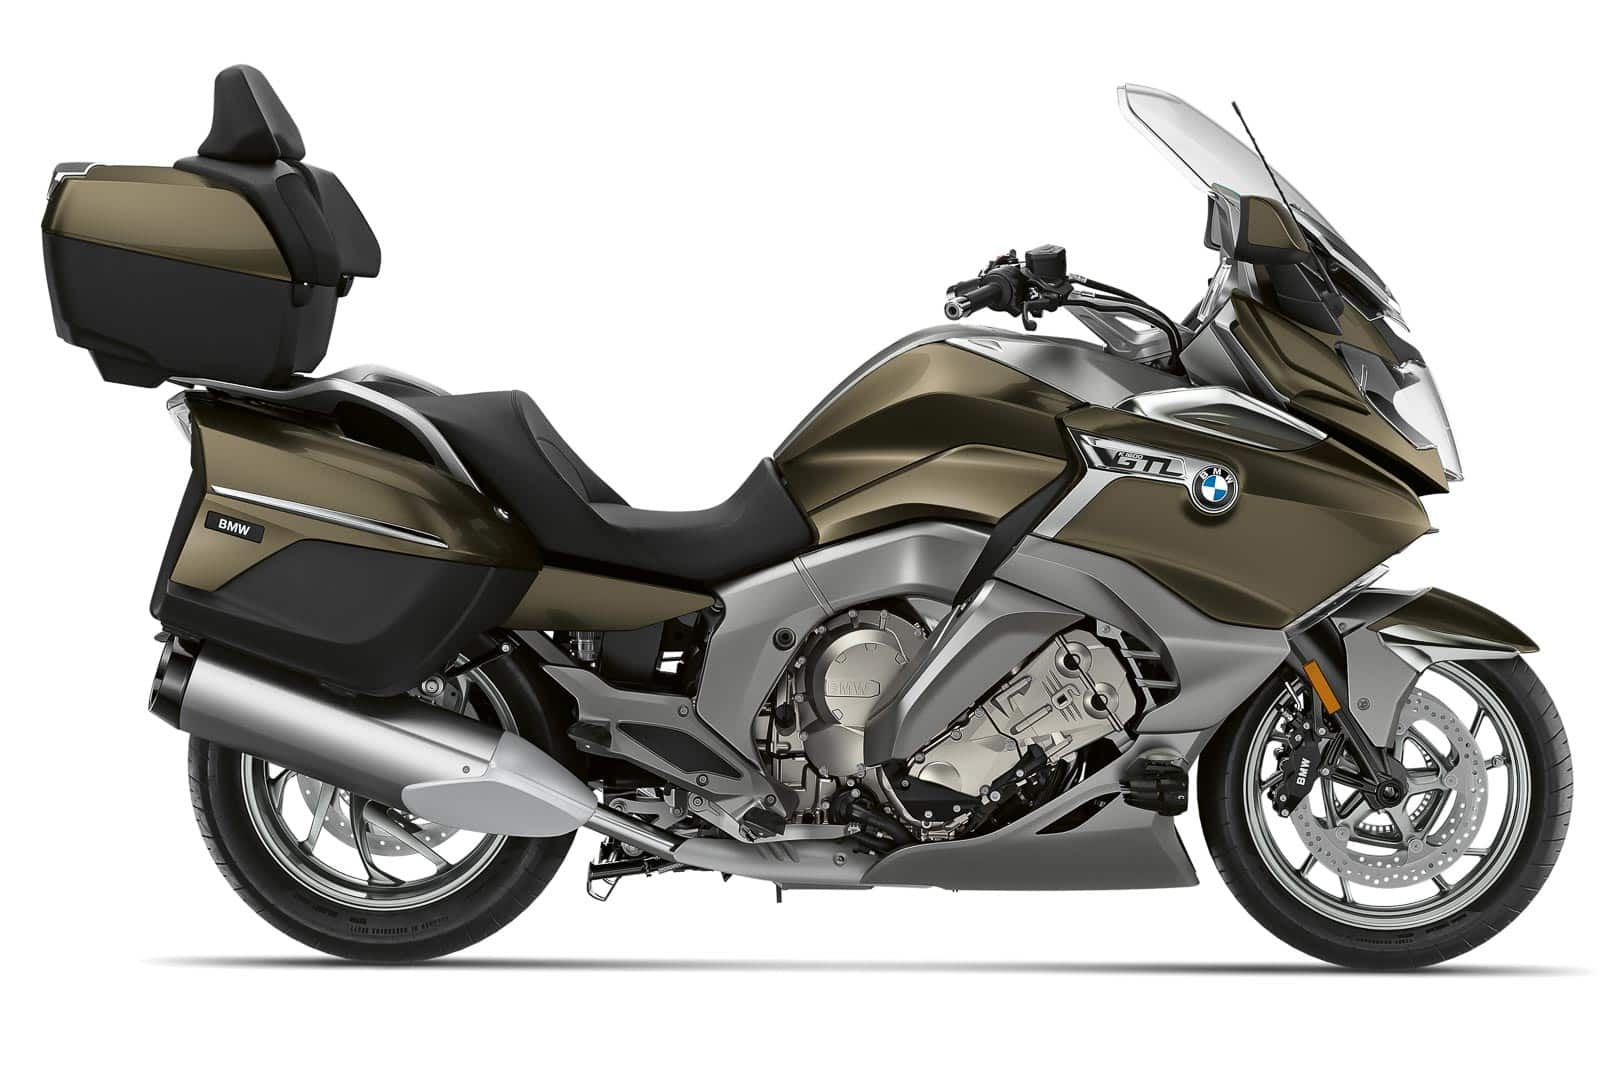 2021 BMW K 1600 GTL First Look Touring Motorcycle 4th